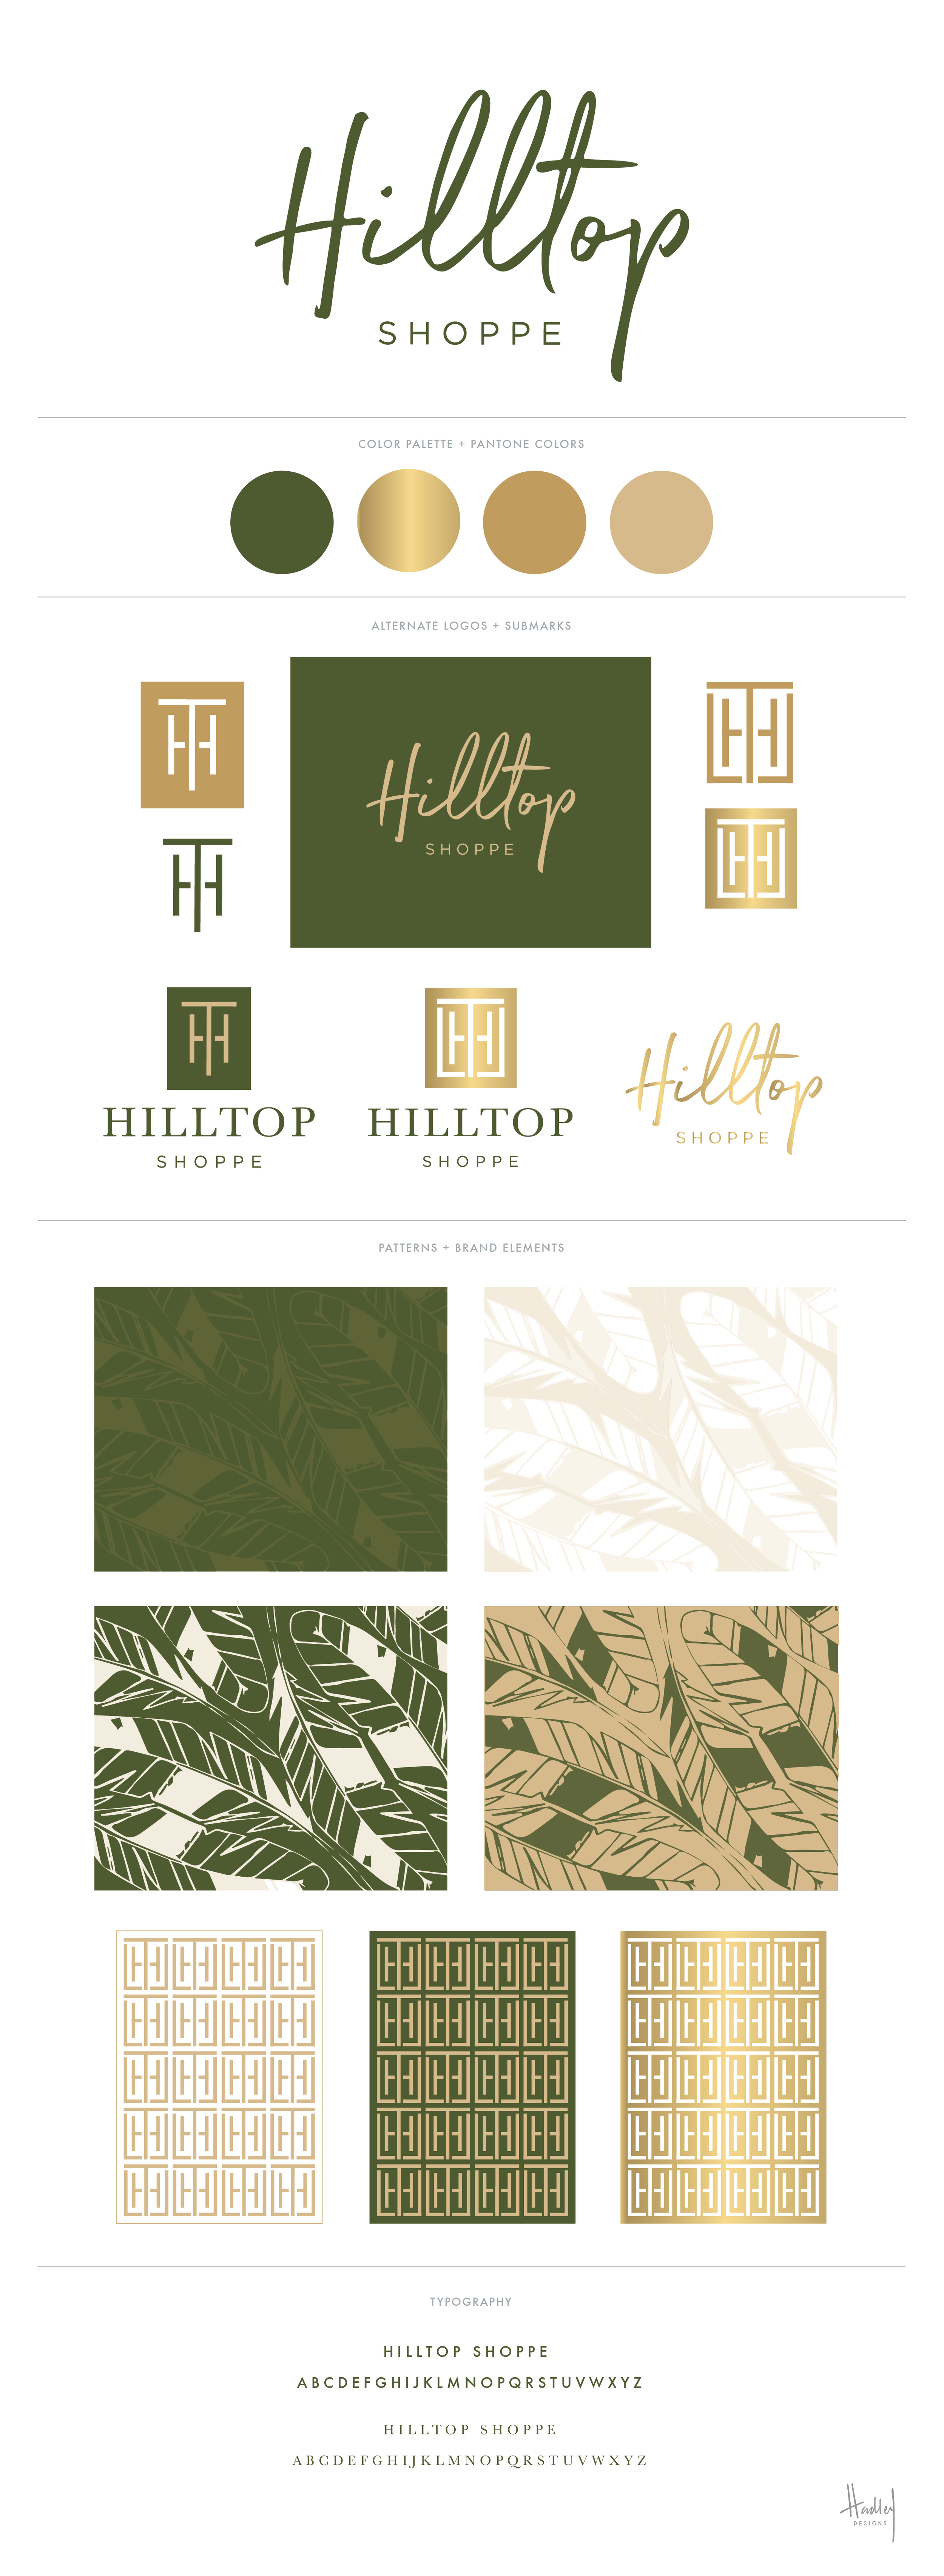 We're thrilled to launch the new branding for  Hilltop Shoppe . This adorable, new shoppe is opening soon on Magazine Street in New Orleans. I'm really hoping that Bruner and I can sneak away to New Orleans for the Grand Opening party in mid-September. Plus, I'd love to finally meet these fabulous owners (Rosalind and Mary-Martin) for the first time in person! New website is in the works...